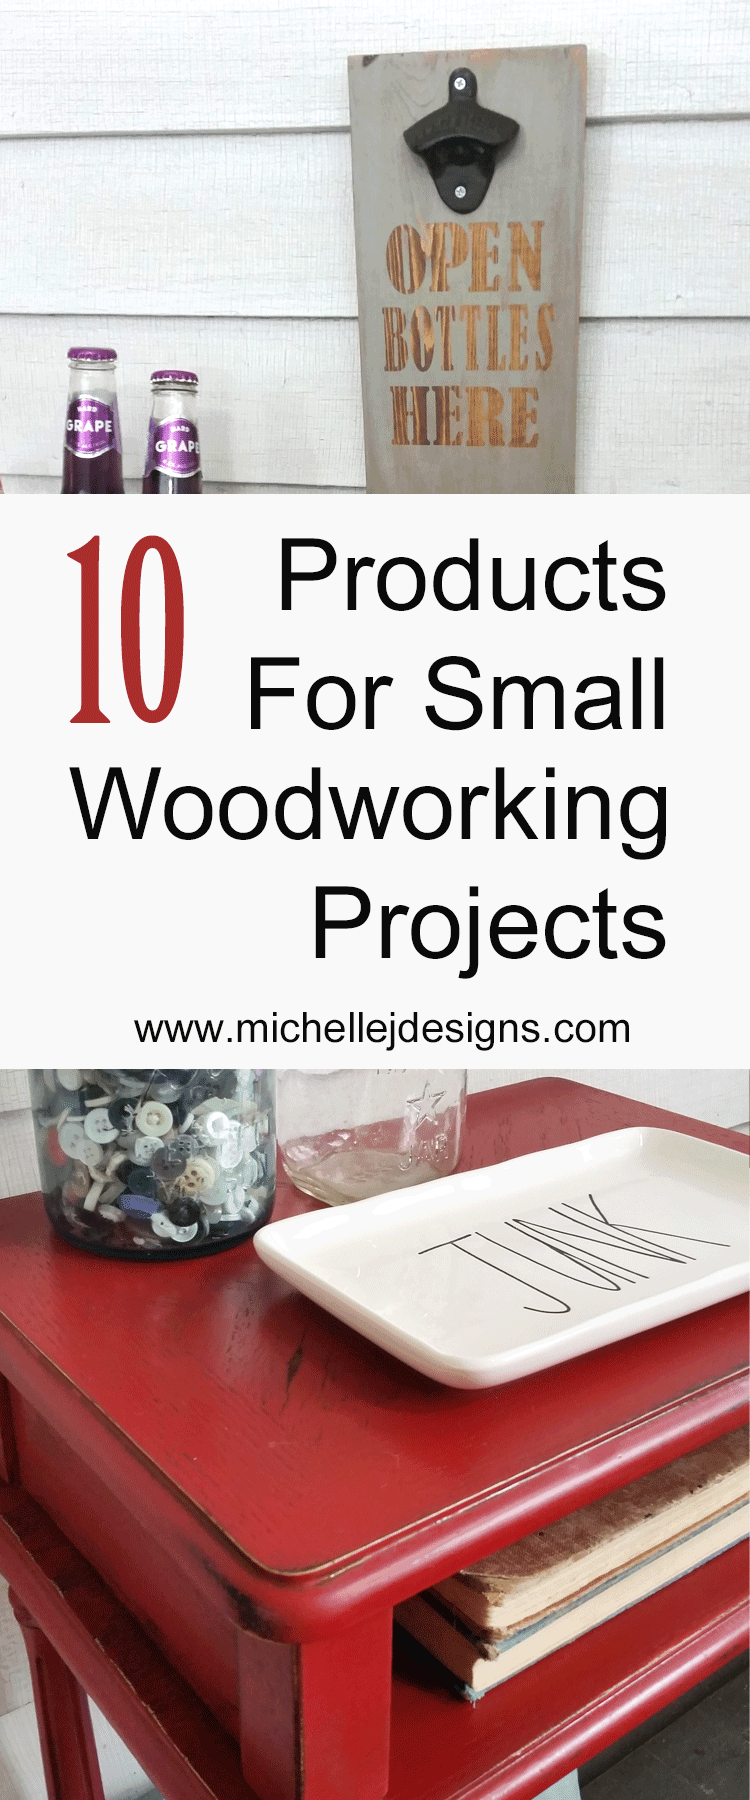 These 10 products, plus one bonus products, are the products we use most often for small woodworking projects. #favoriteprodcuts #woodworking #upcyles #diy - www.michellejdesigns.com